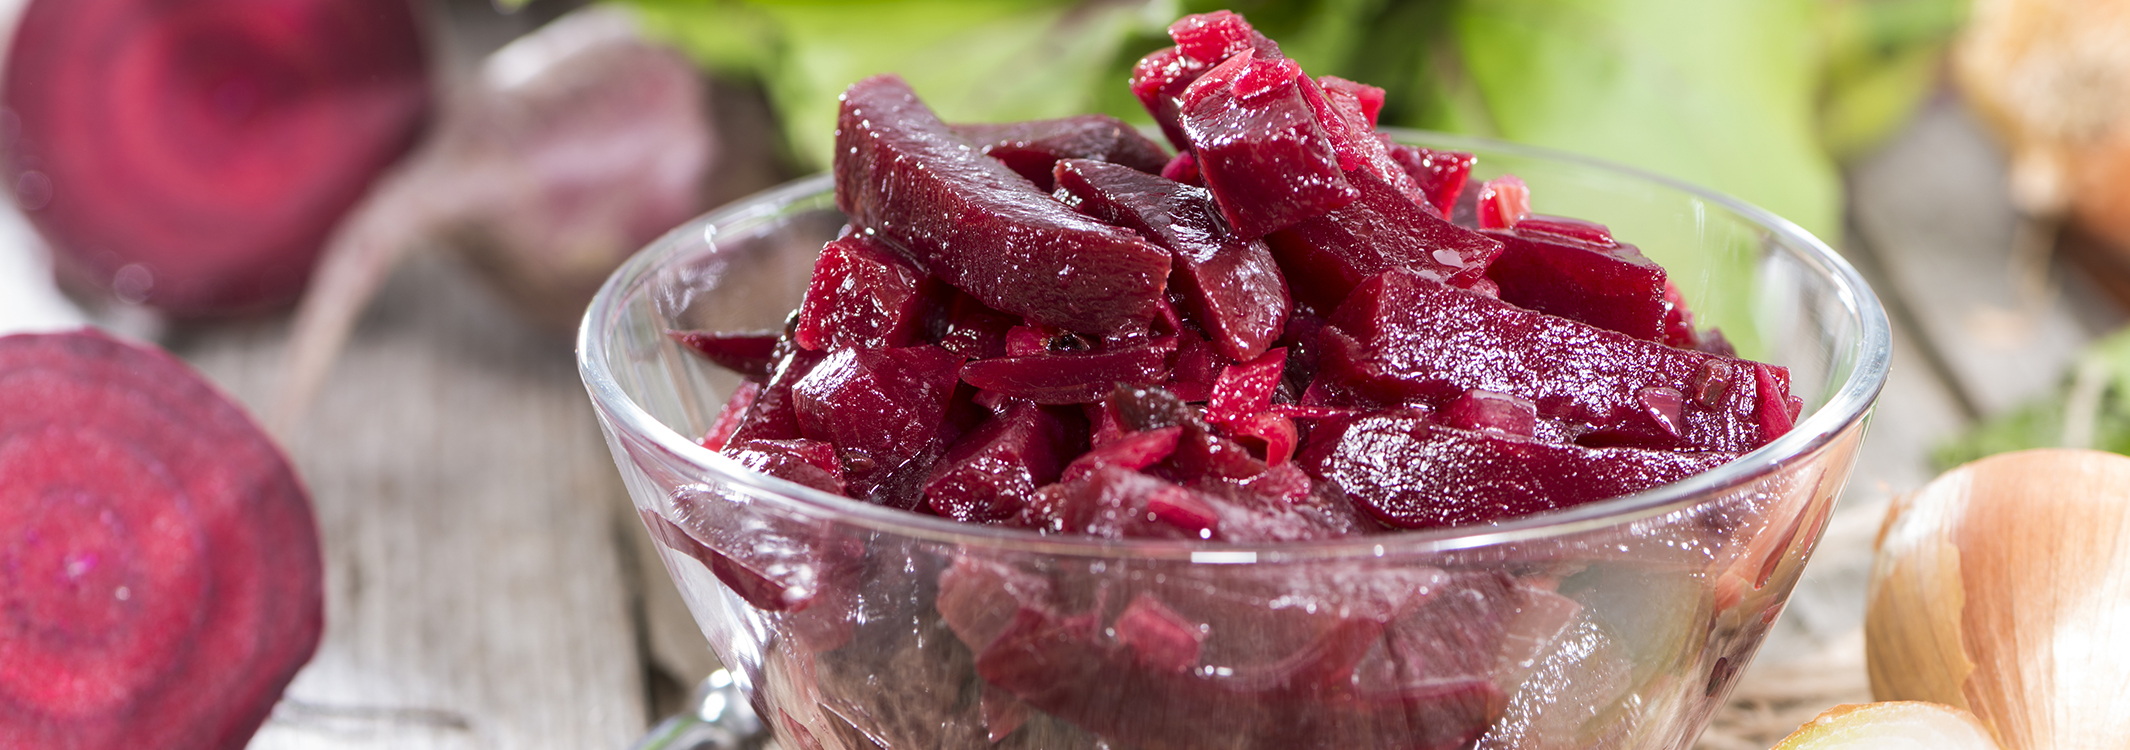 Beet and Onion Salad